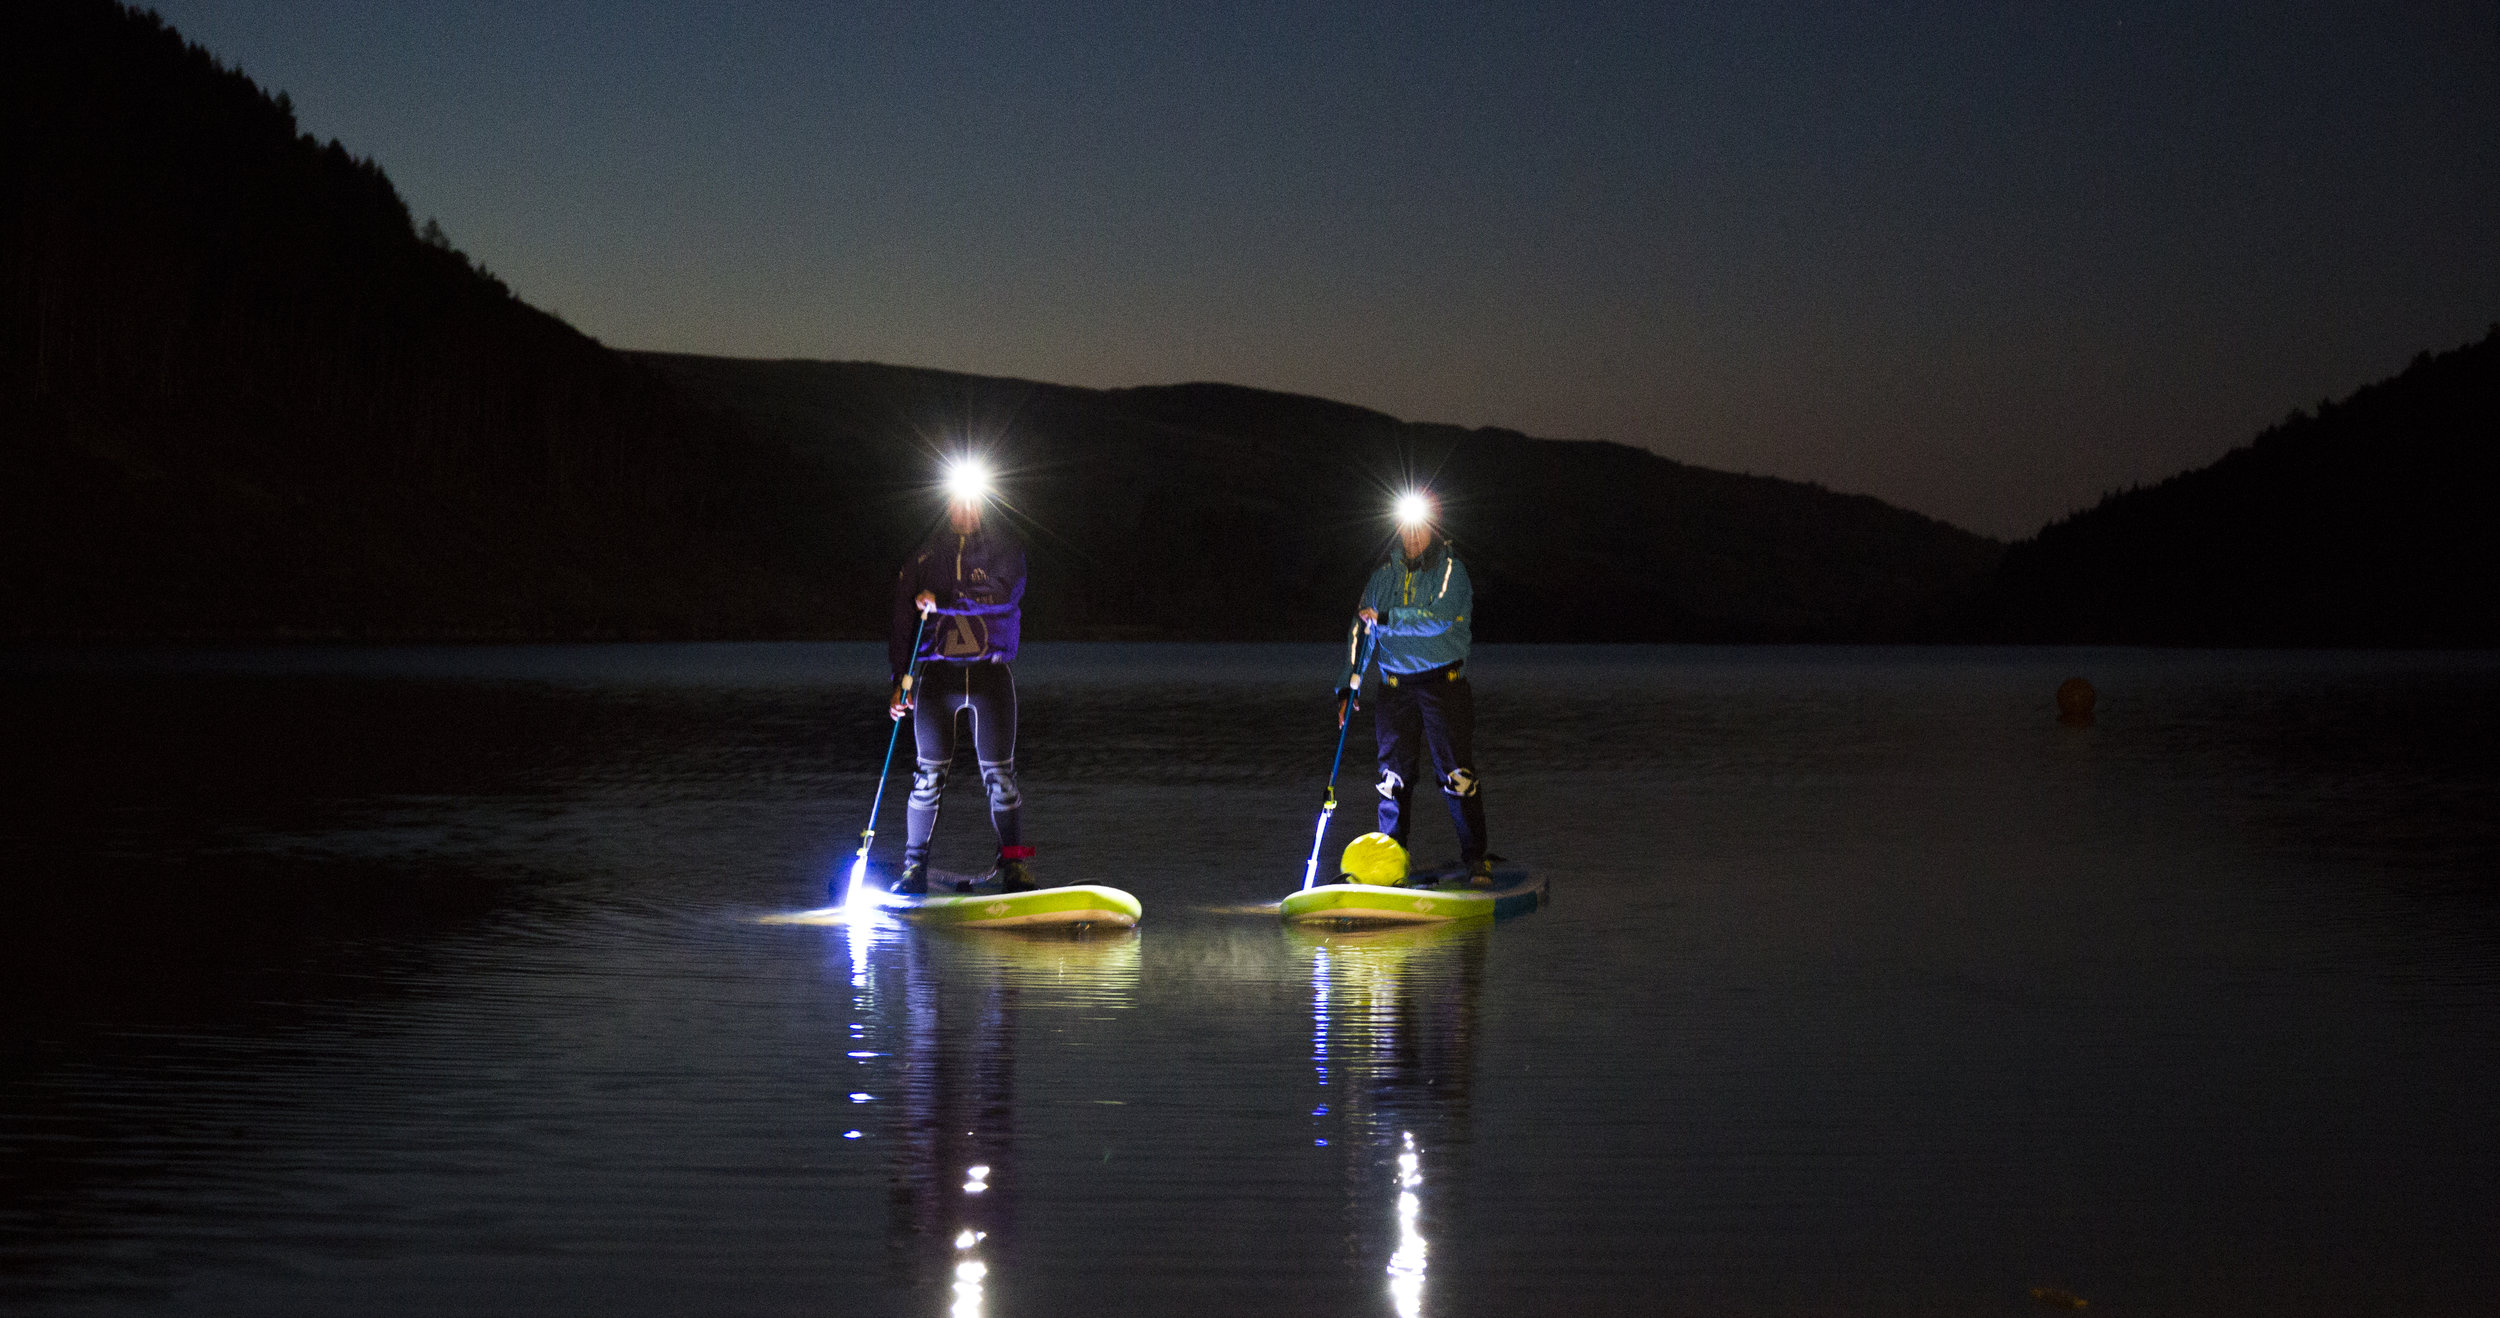 Night Paddleboarding in Snowdonia | Psyched Paddleboarding